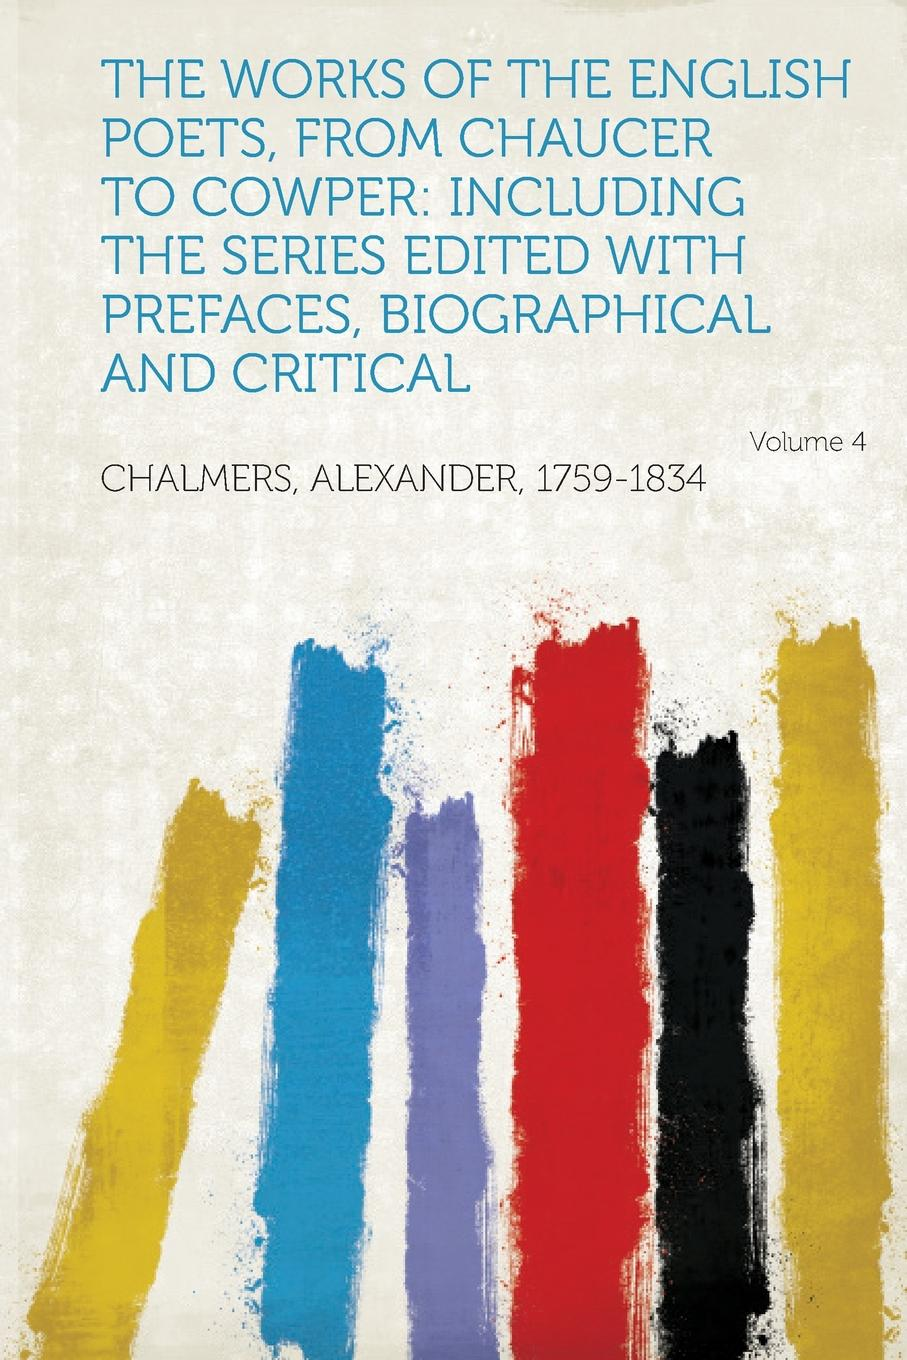 Alexander Chalmers The Works of the English Poets, from Chaucer to Cowper. Including the Series Edited with Prefaces, Biographical and Critical Volume 4 отсутствует the works of the english poets from chaucer to cowper vol 15